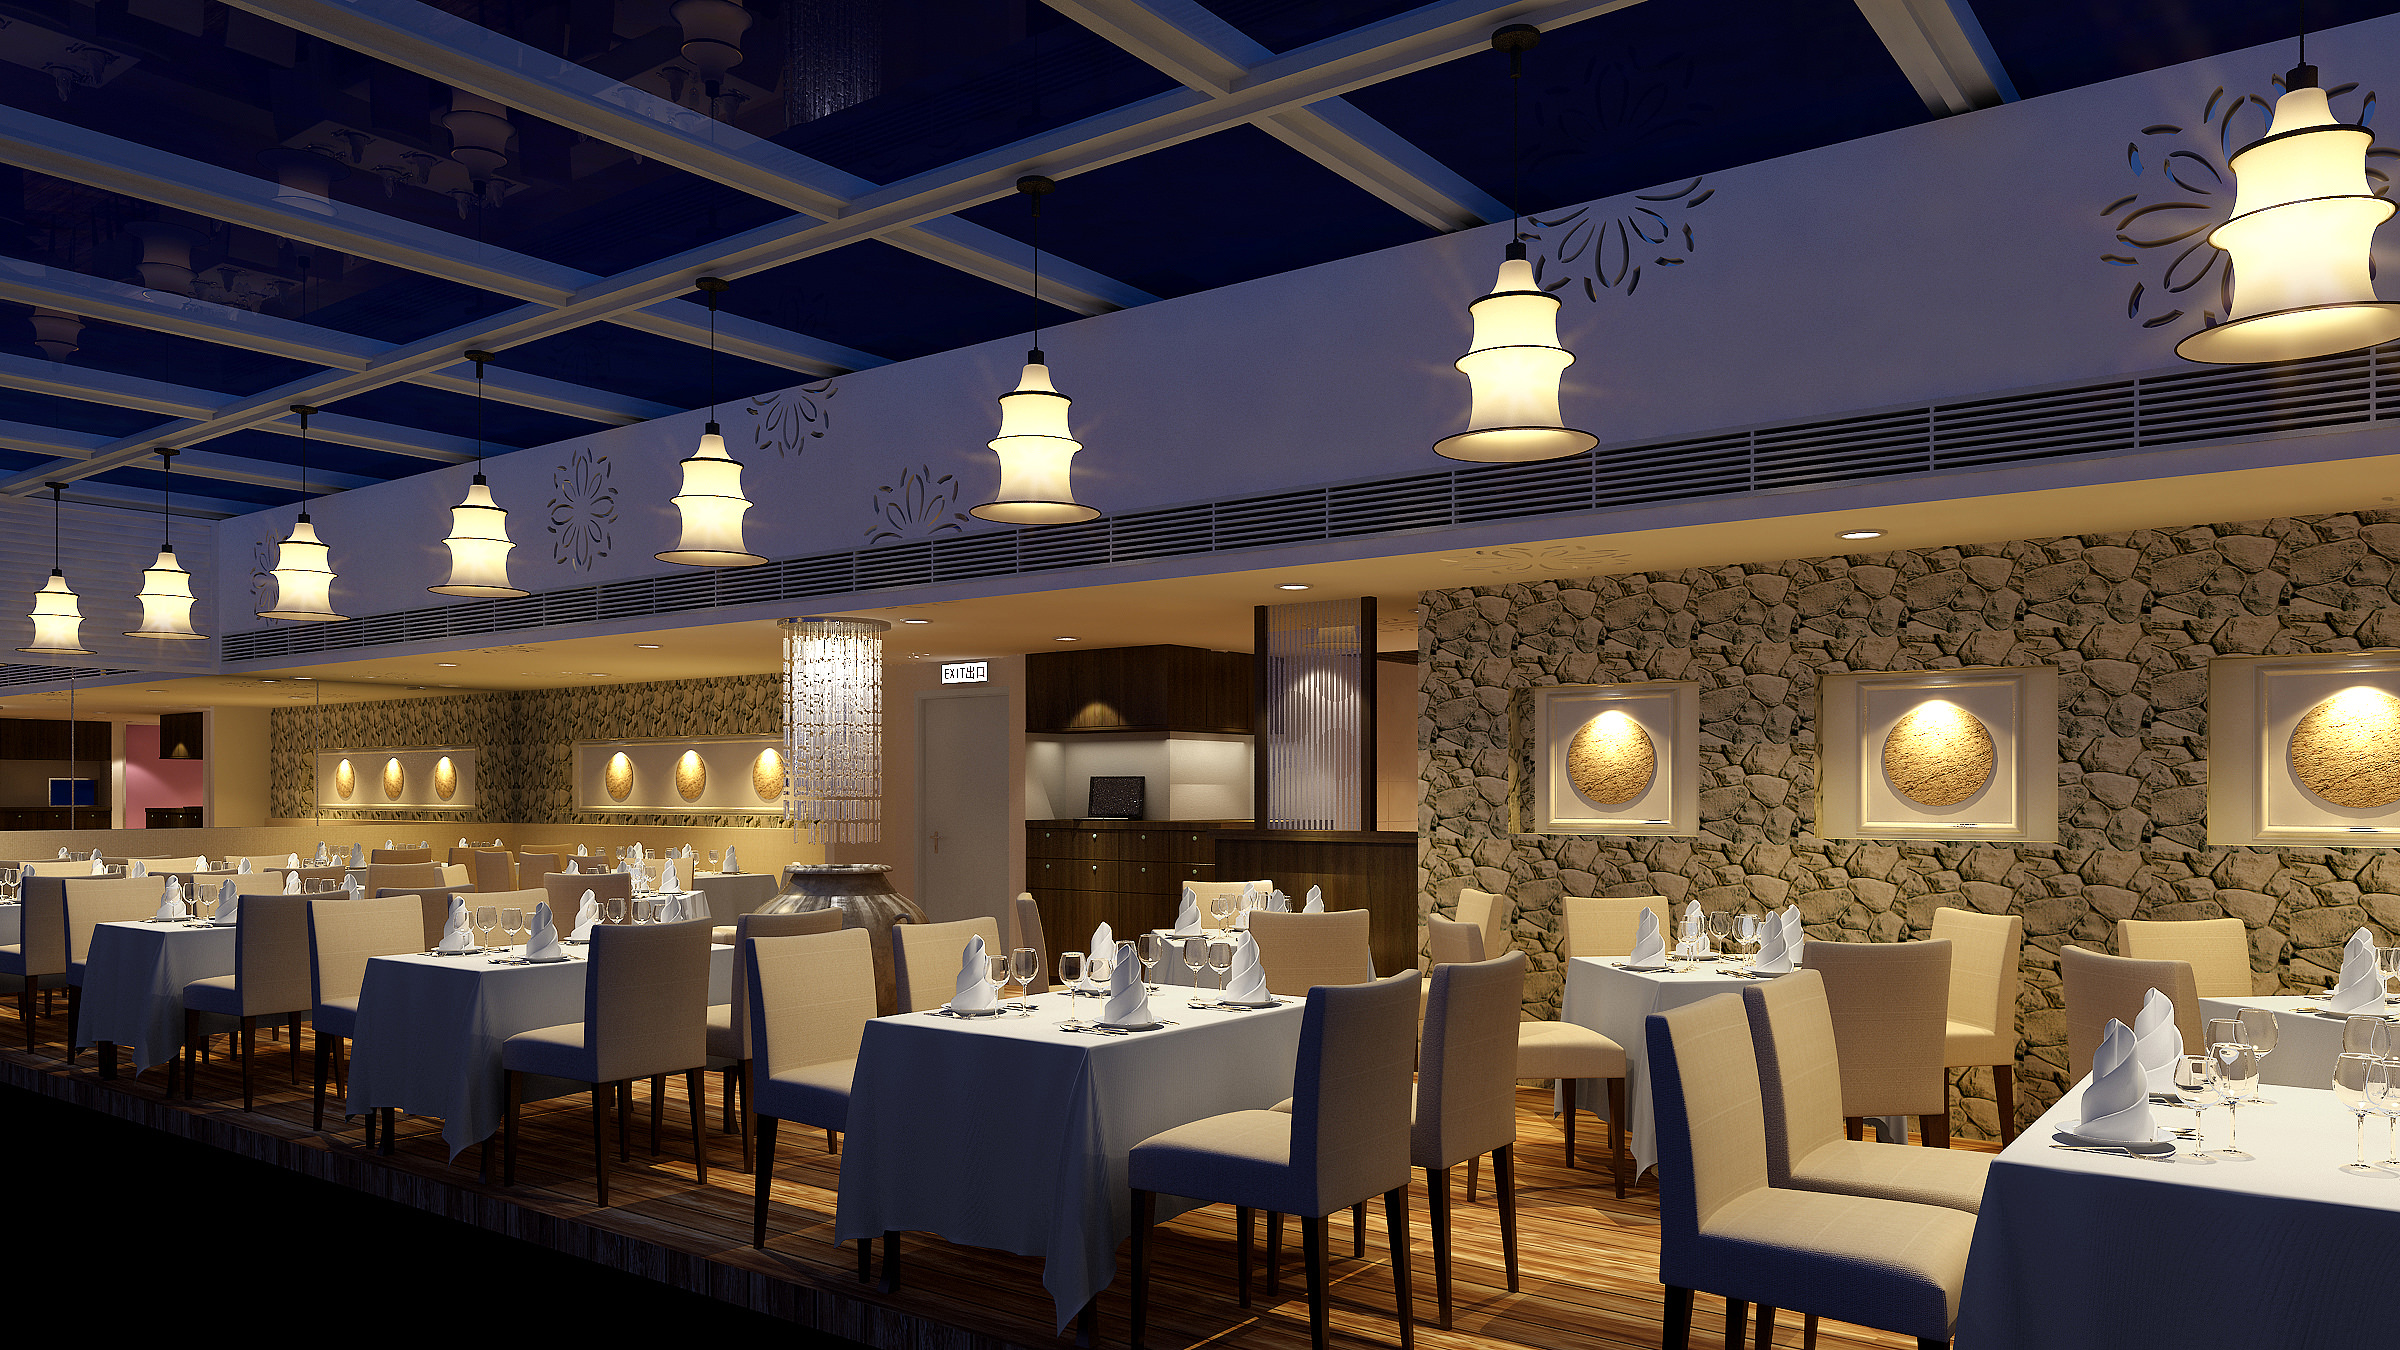 luxury restaurant with high-end wall decor 3d model max